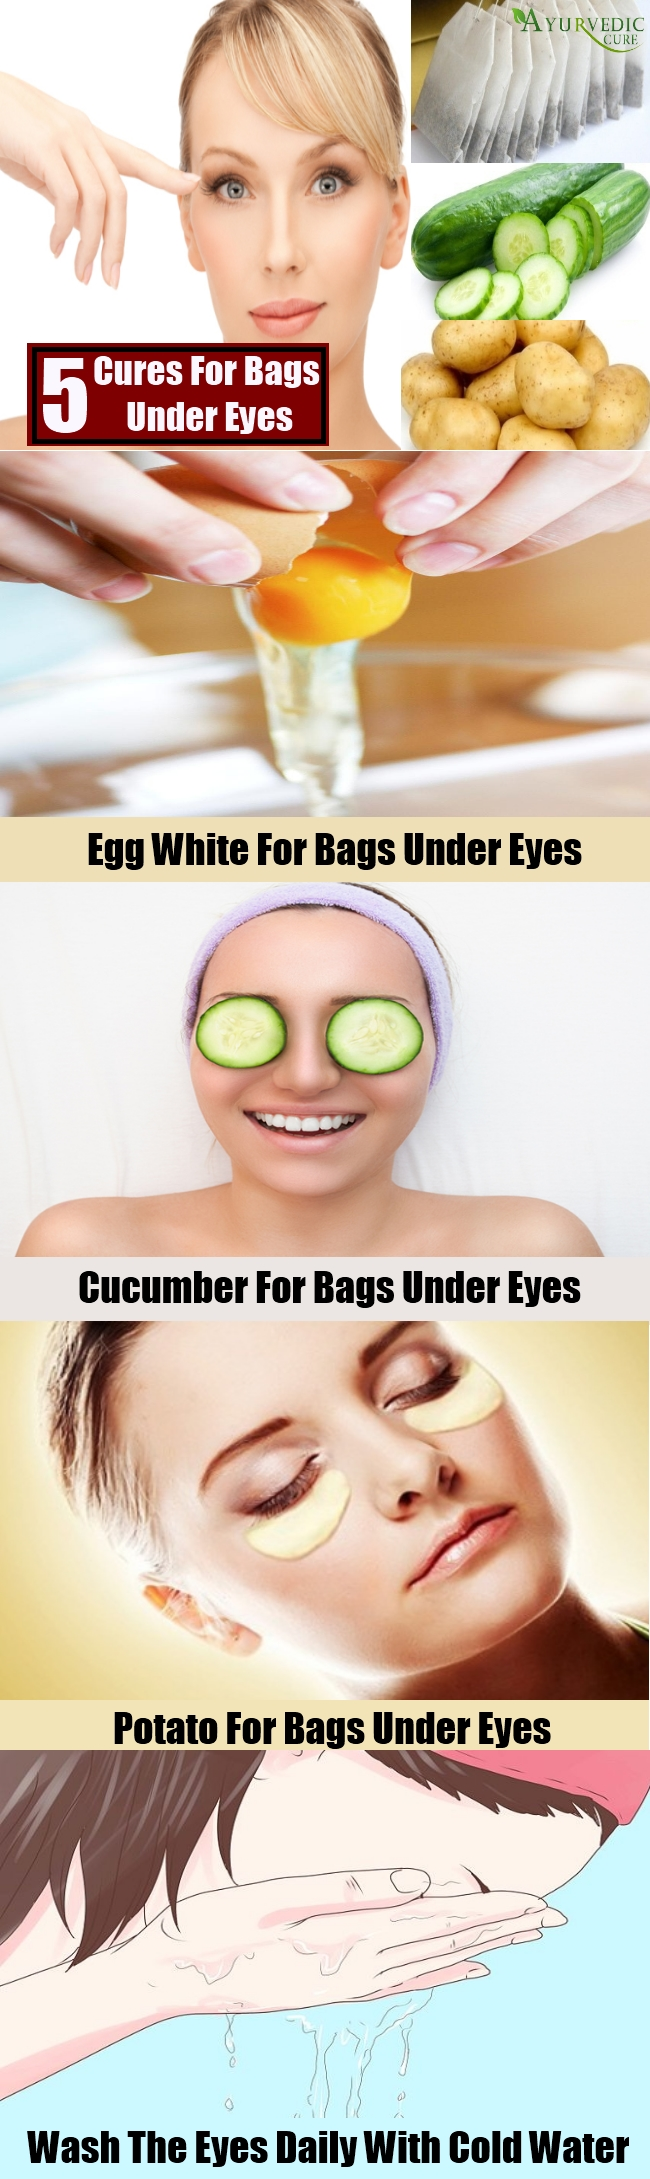 Top 5 Natural Cures For Bags Under Eyes